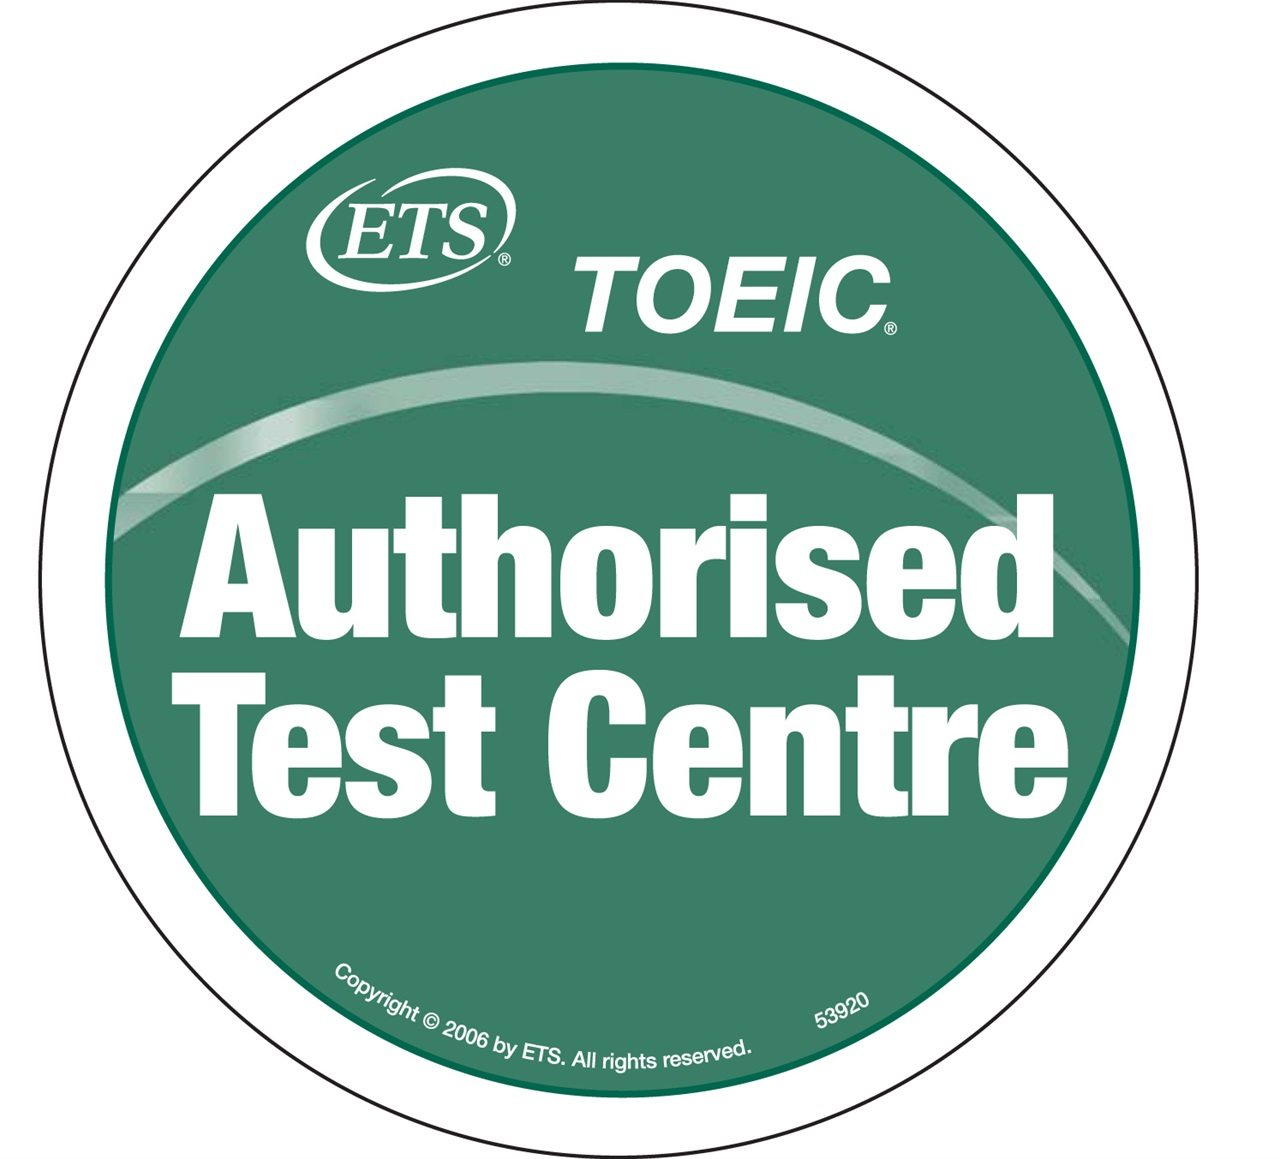 Take your TOEIC test